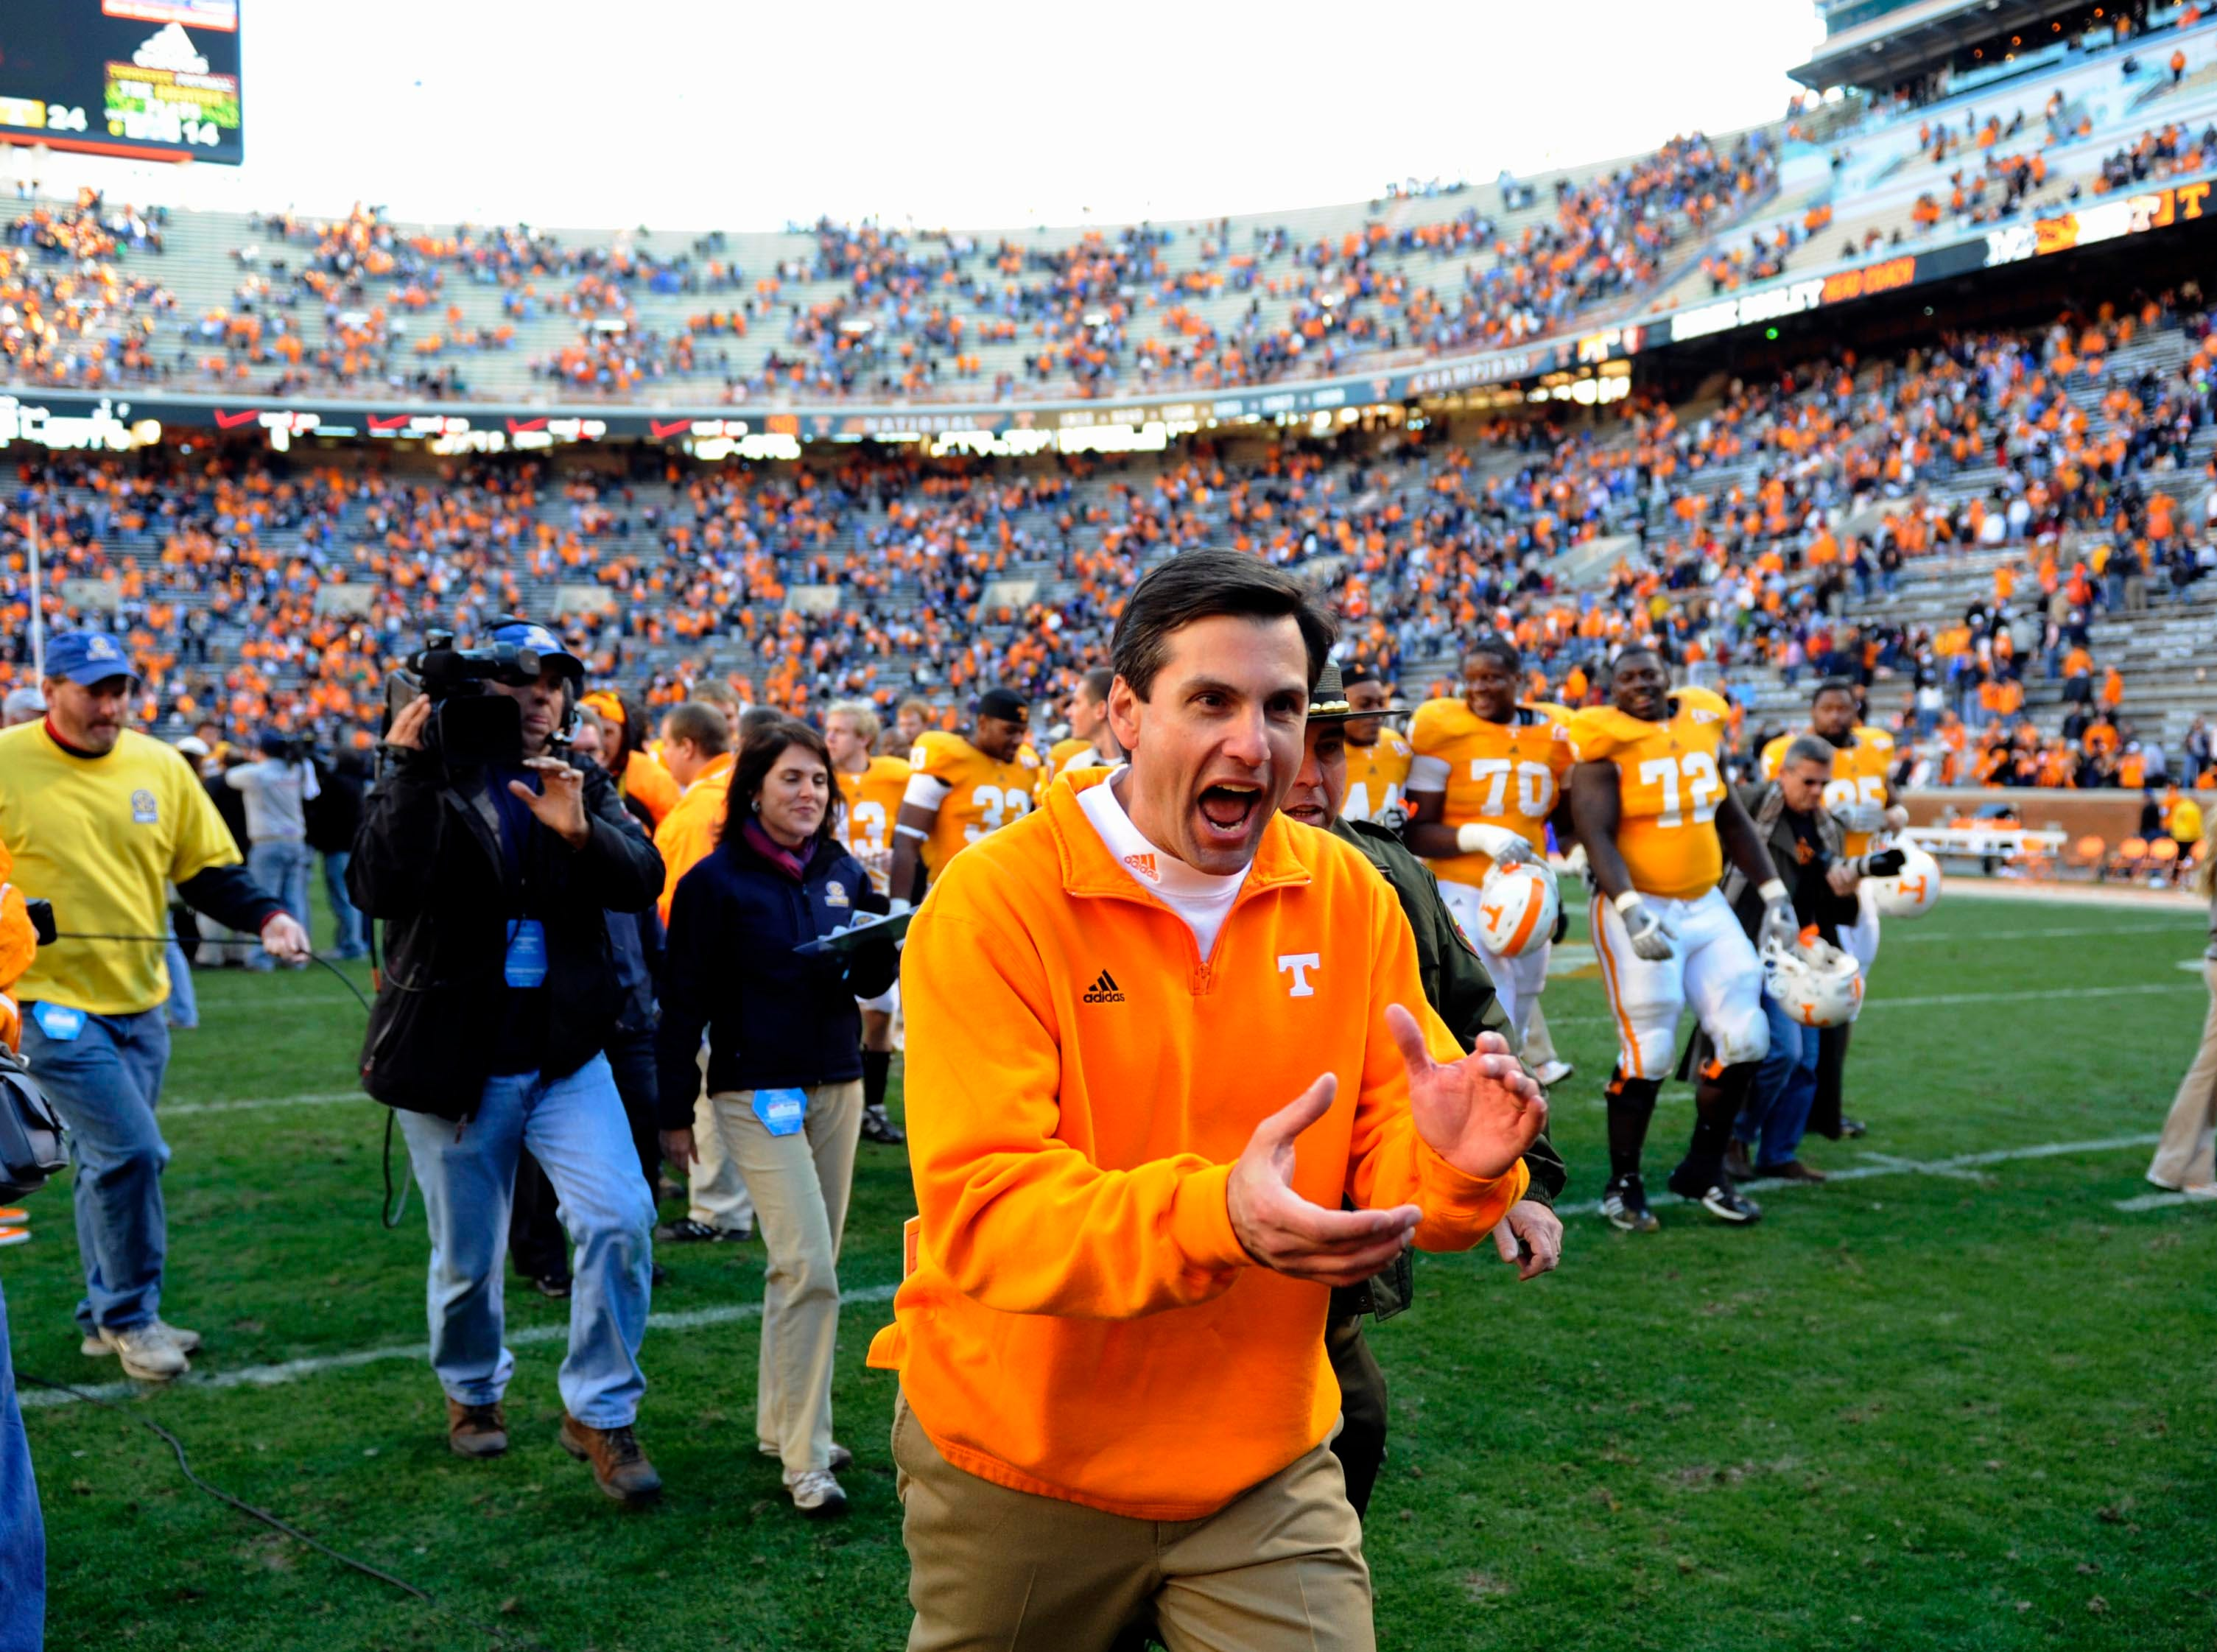 Tennessee head coach Derek Dooley celebrates as he leaves the field Saturday, Nov. 27, 2010 after beating Kentucky in Neyland Stadium in Knoxville. Tennessee won 24-14.